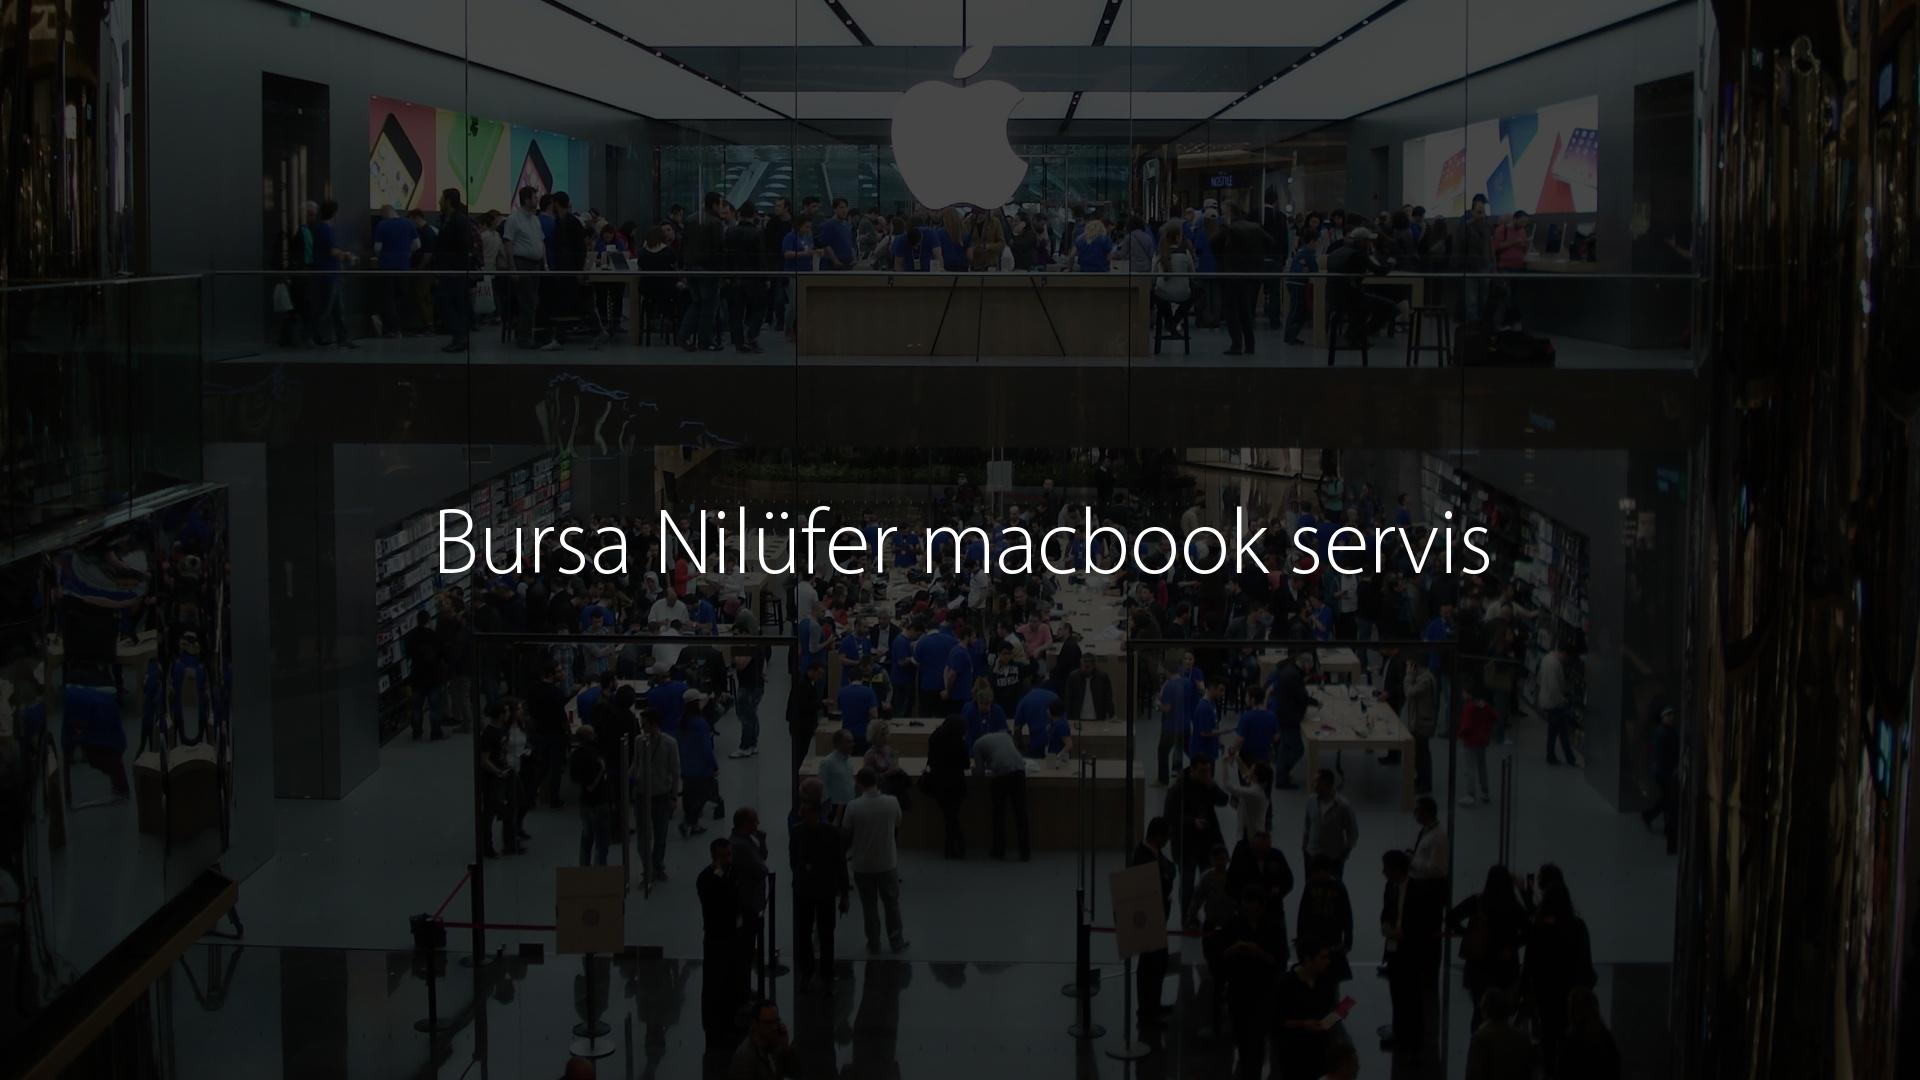 Bursa Nilüfer macbook servis